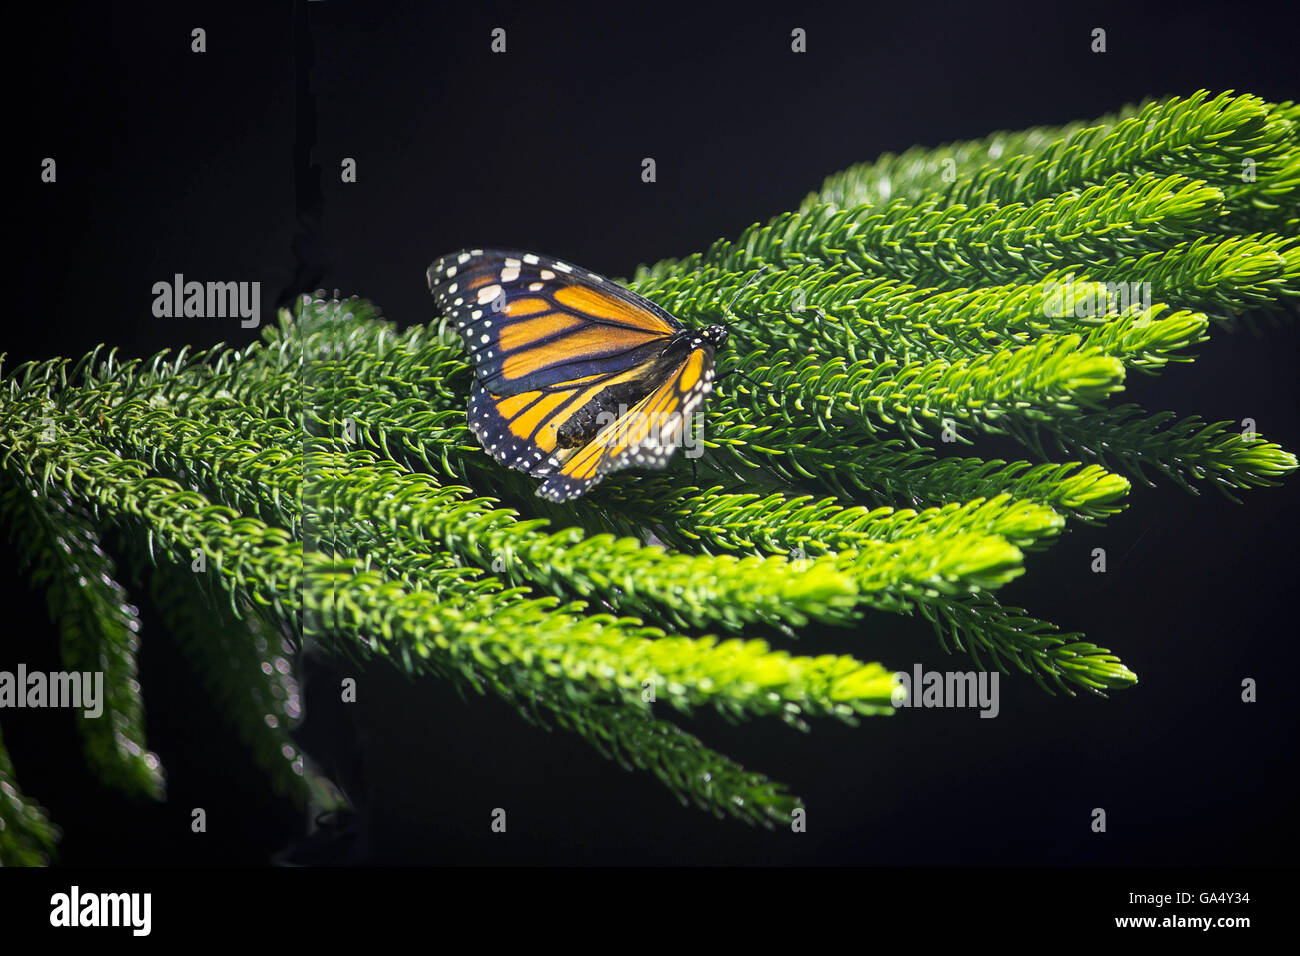 A Monarch butterfly sits on a conifer branch in a Butterfly exhibit at the Natural History Museum New York City - Stock Image